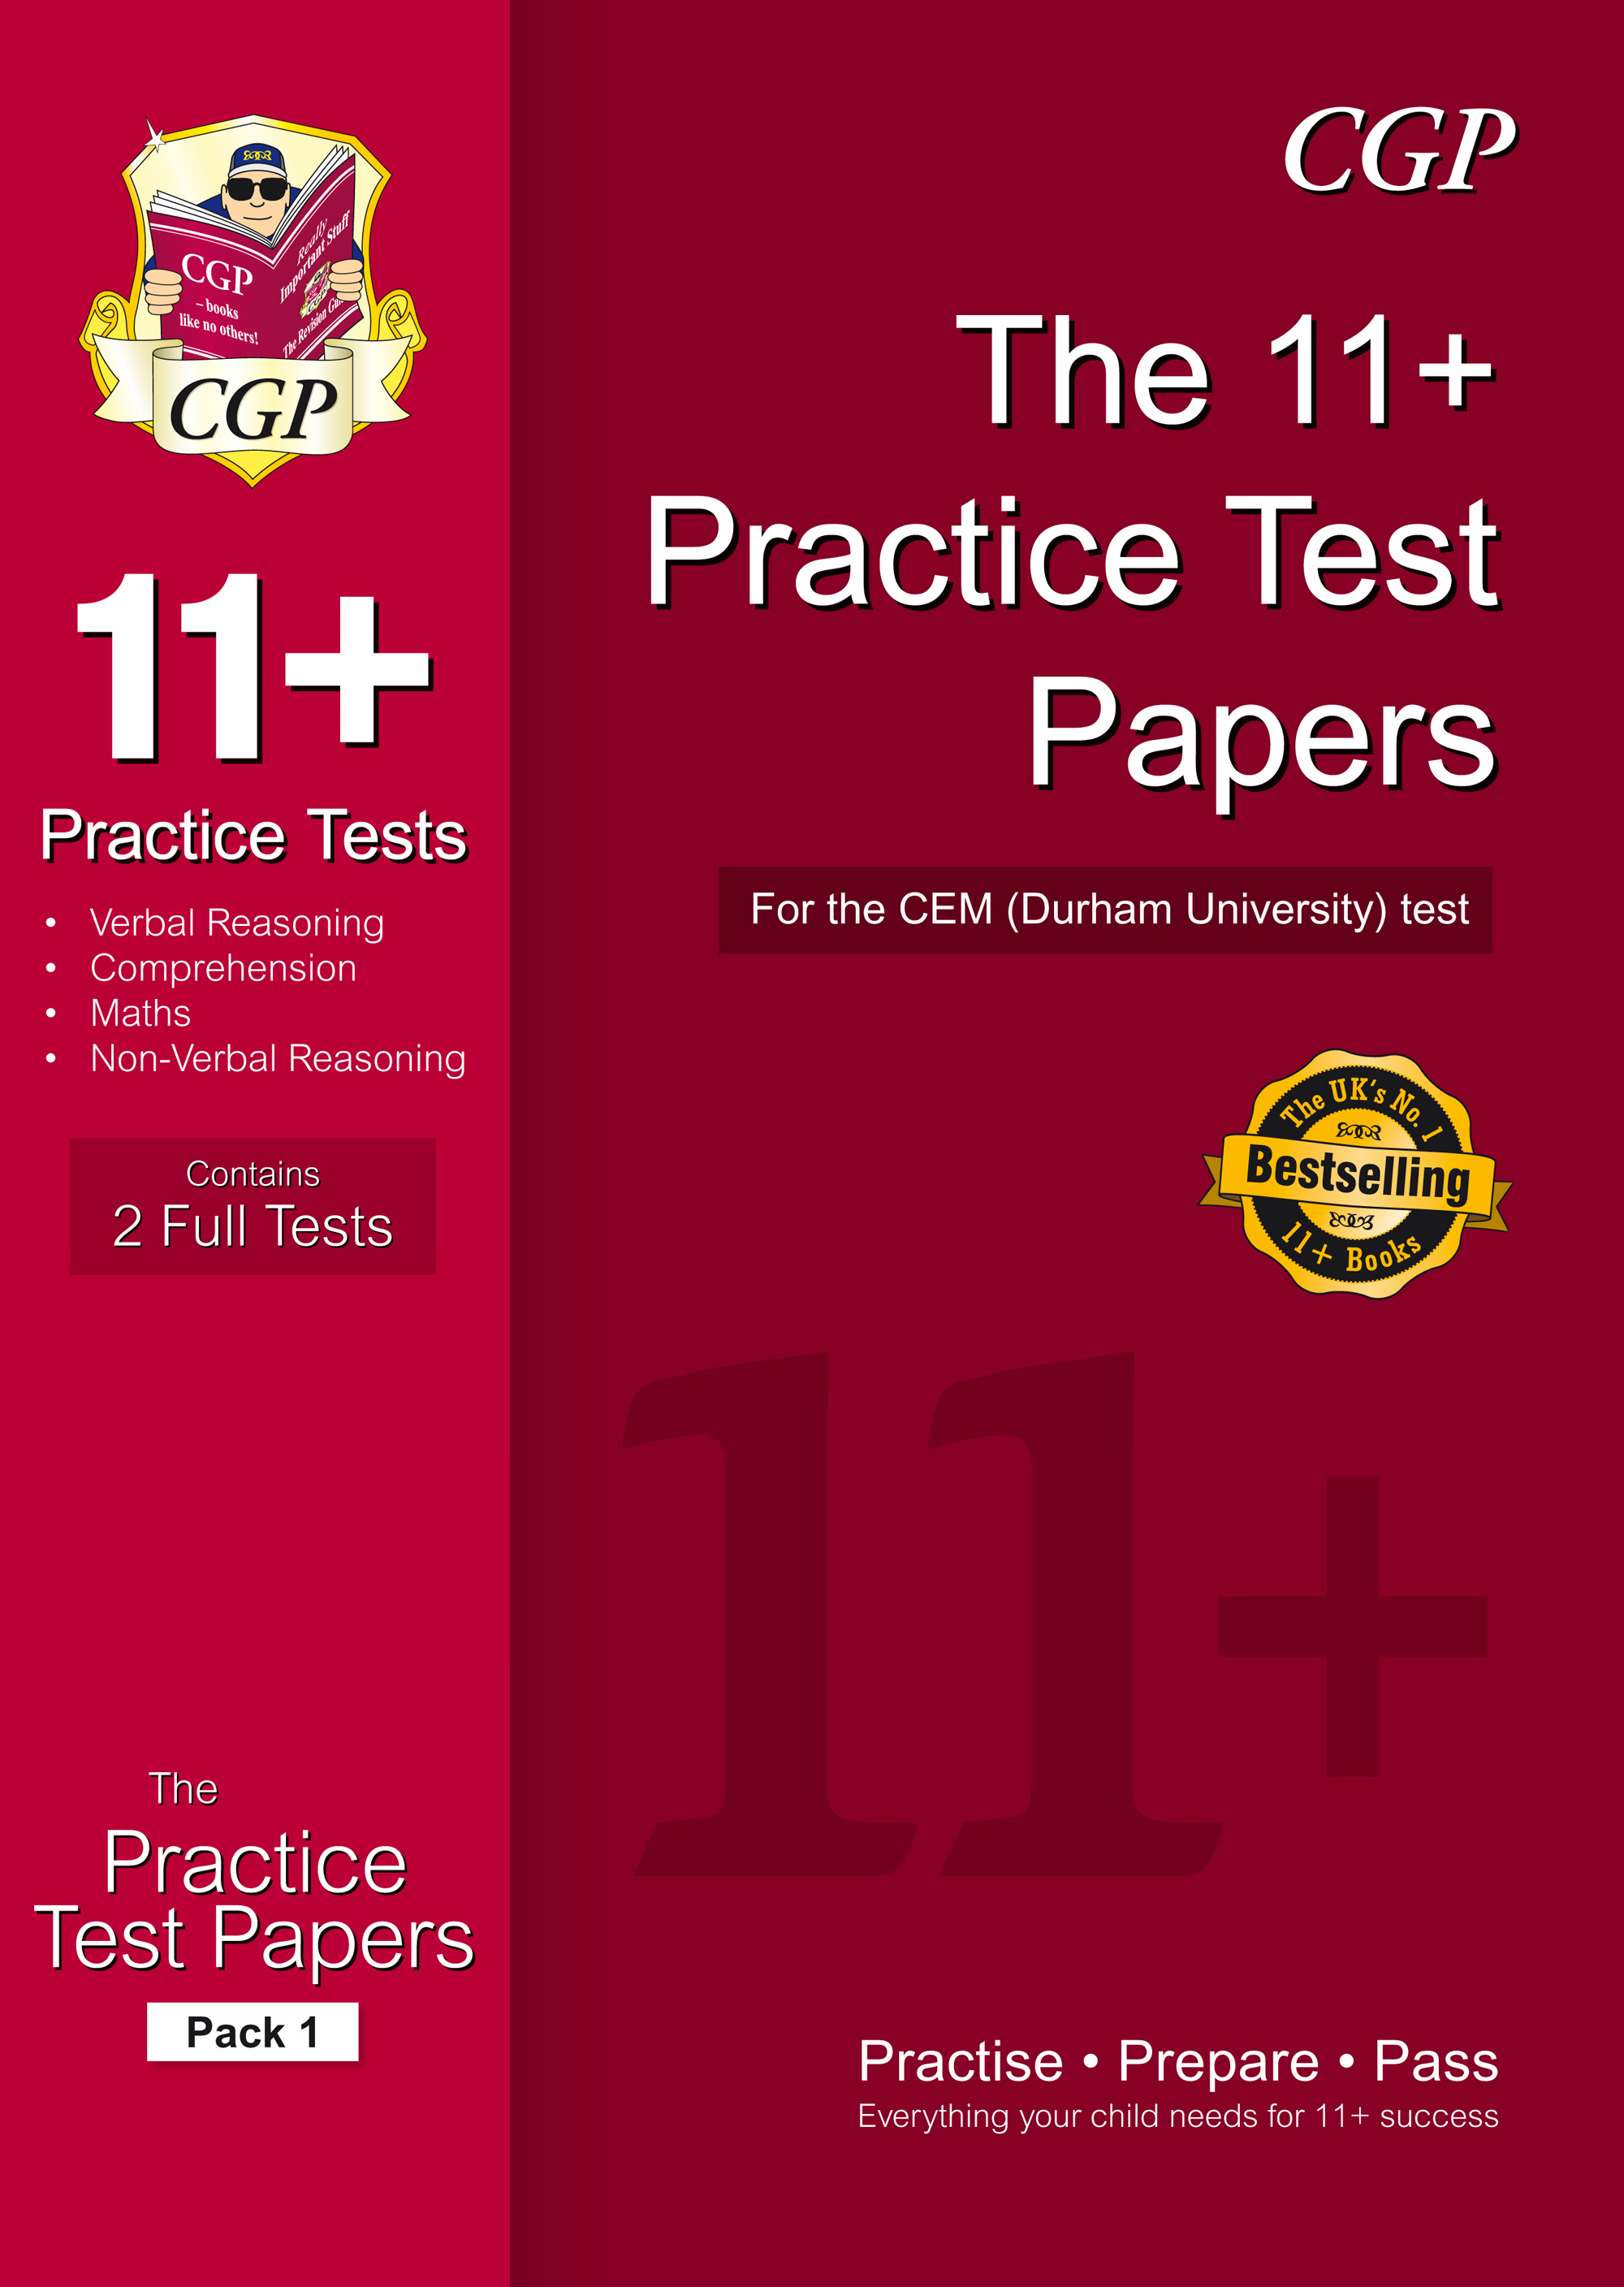 ELPDE1 - 11+ Practice Papers for the CEM Test - Pack 1